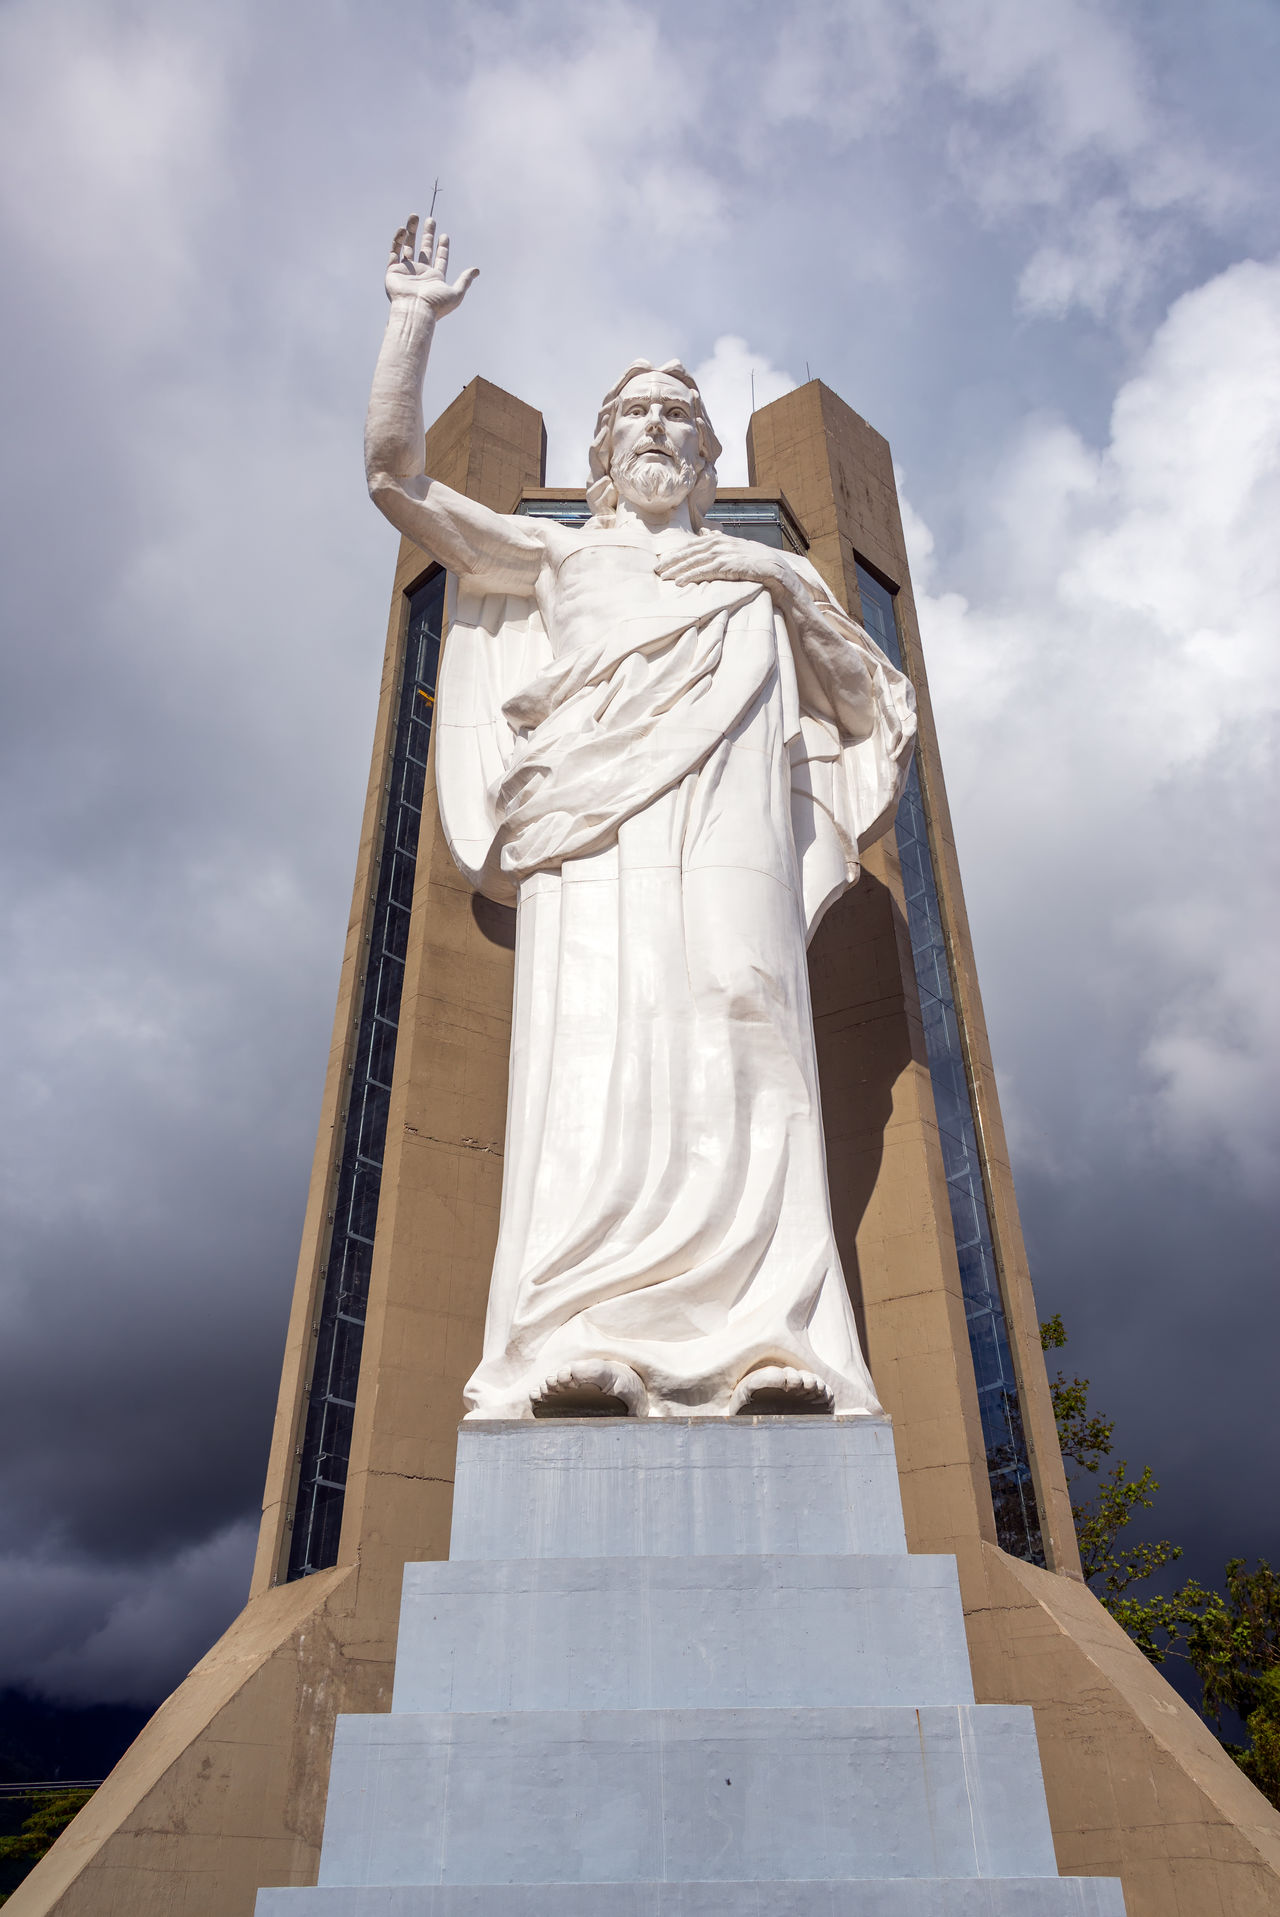 Vertical view of El Santisimo statue of Jesus Christ with a dramatic sky in Floridablanca, Colombia Bucaramanga Building Catholic Cerro Christ Christianity City Cloud Clouds Colombia Ecoparque Elsantisimo Floridablanca Jesus Landmark Park Religion Santander Santisimo Sculpture Statue Structure Urban View White